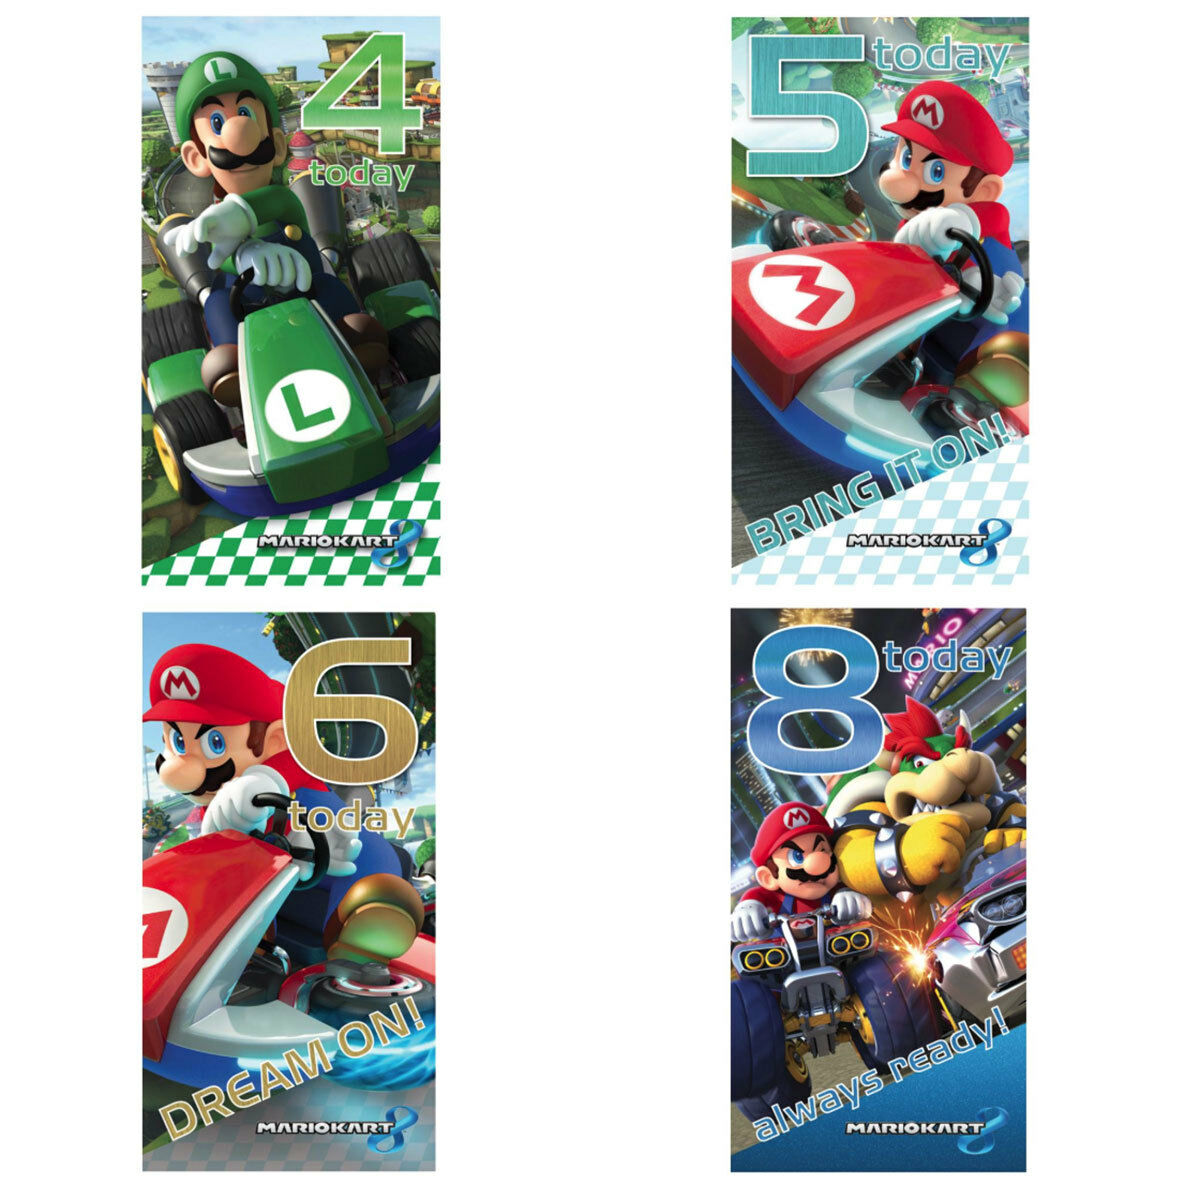 SUPER MARIO KART Birthday Cards (Assorted)i - £1.99 | PicClick UK